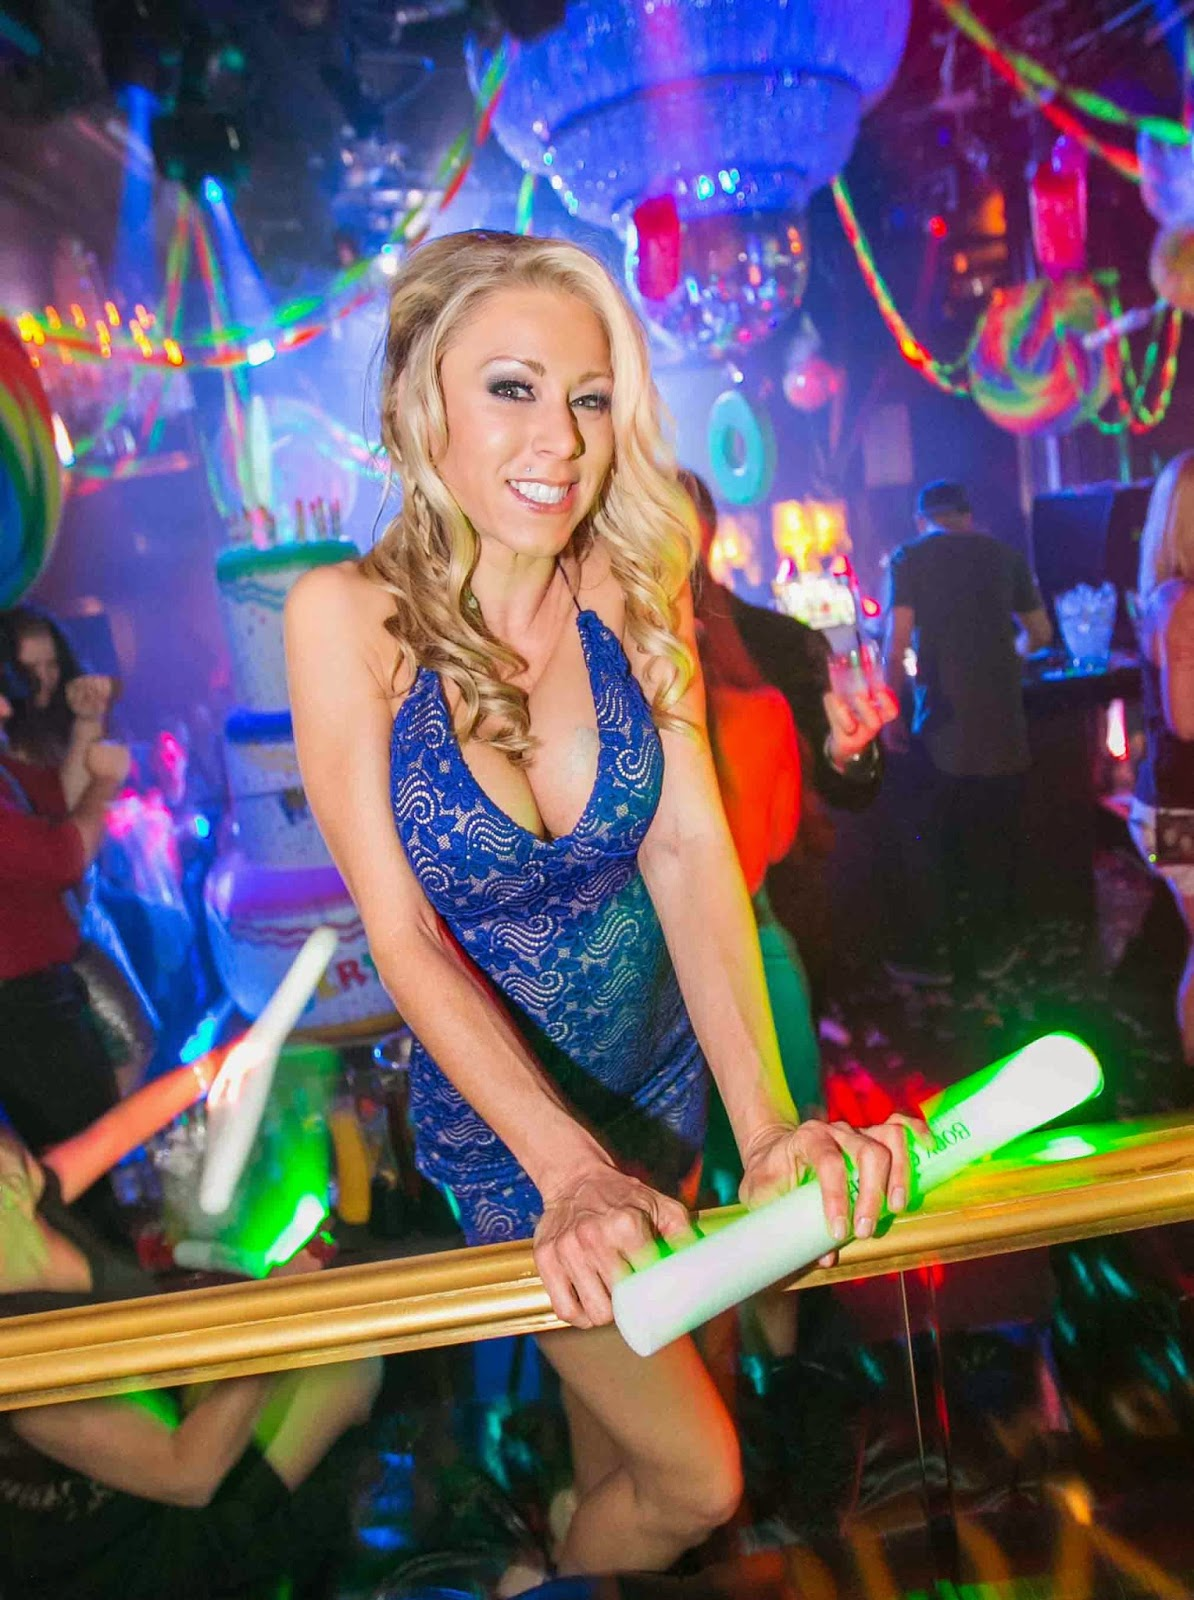 Katie Morgan Celebrates A Las Vegas Birthday